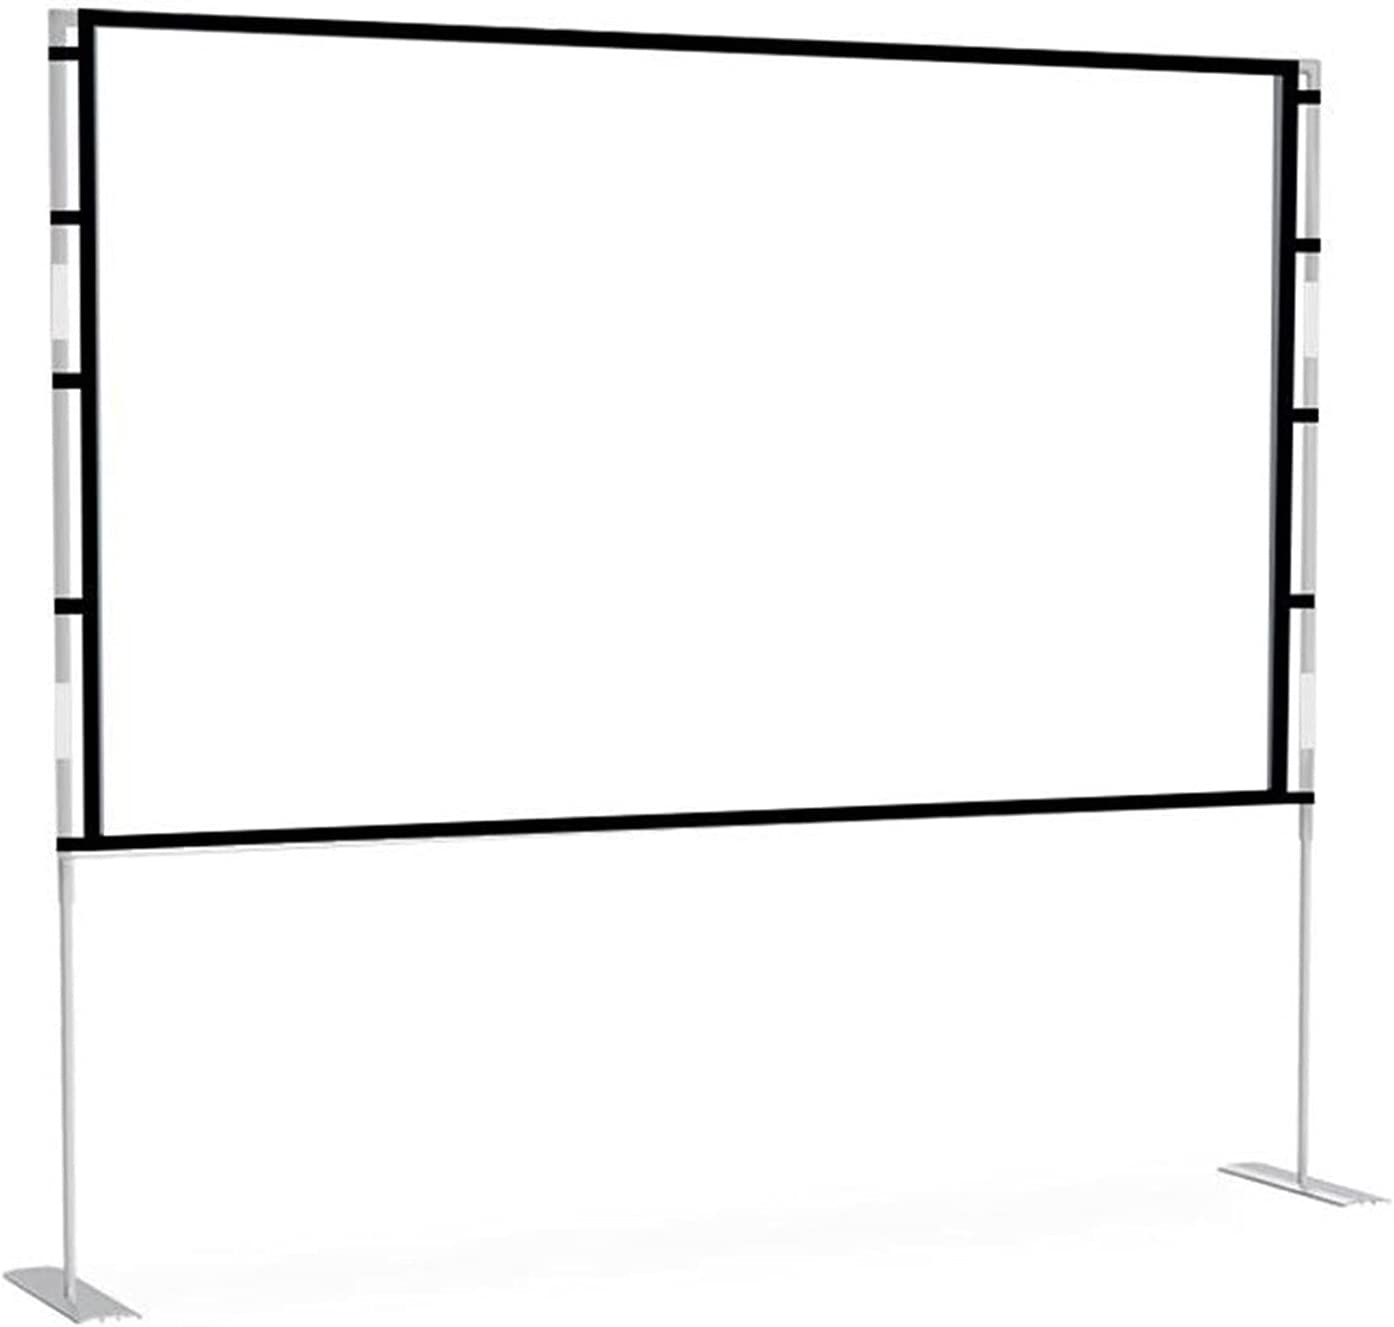 Qgg Foldable Anti-Crease Portable Projection Movies Screen for Home Theater Outdoor Indoor Support Double Sided Projection by Screen Portable Outdoor